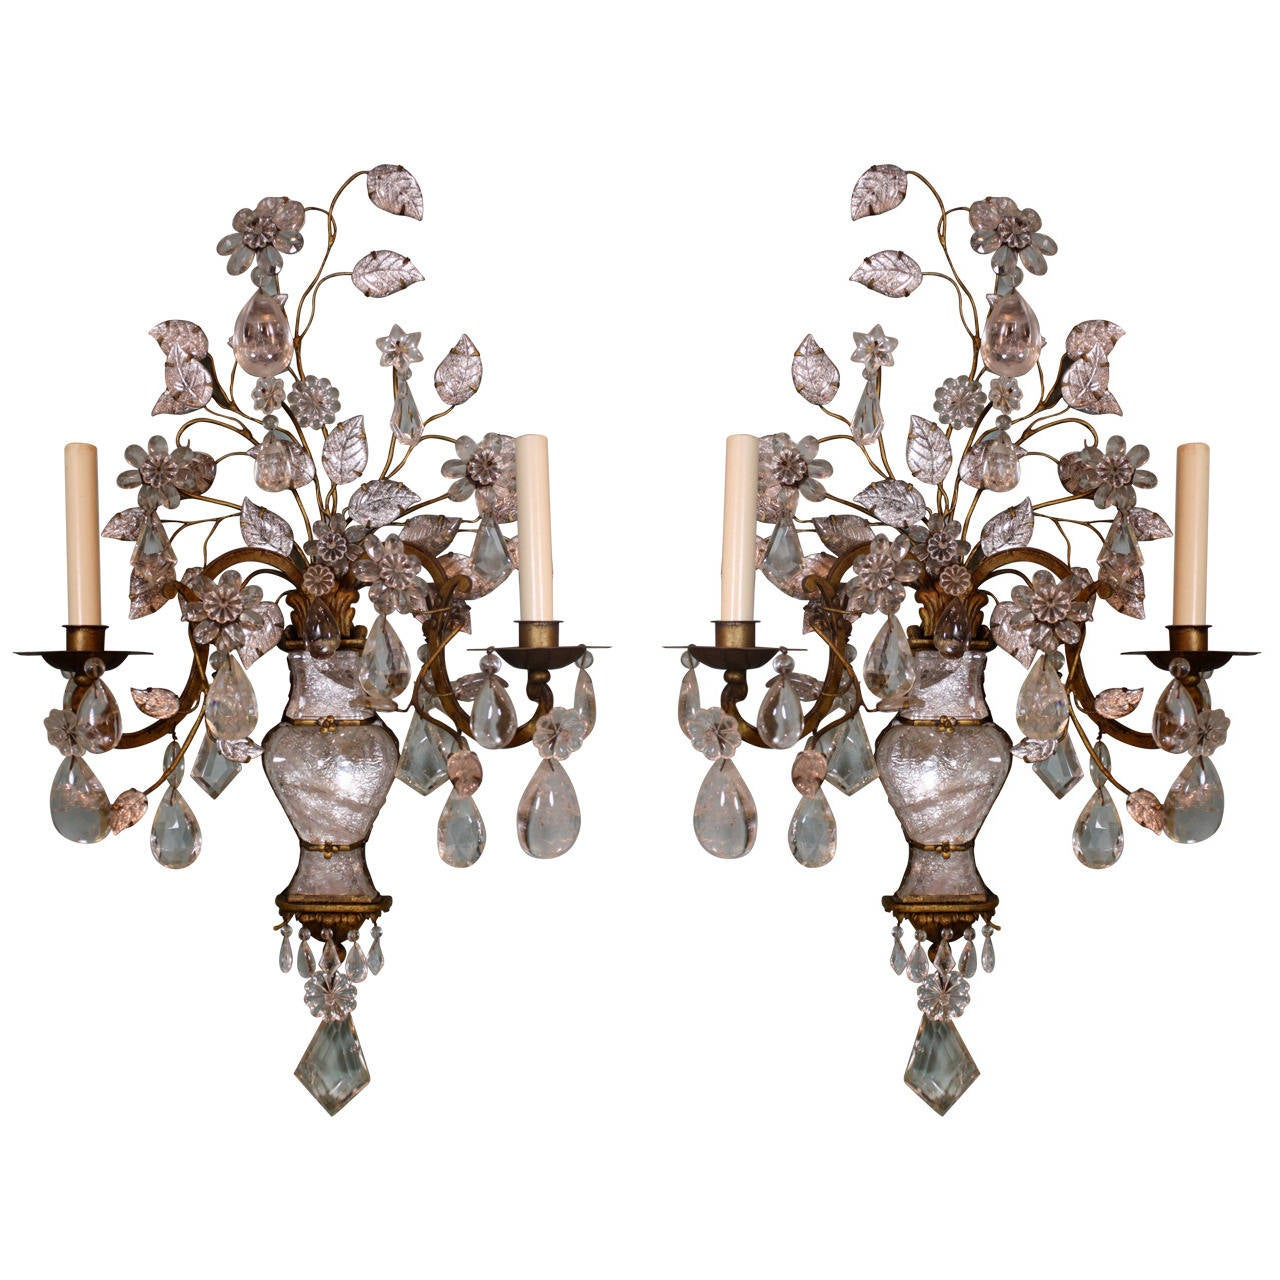 Spectacular Pair of Maison Bagues Rock Crystal Sconces at 1stdibs